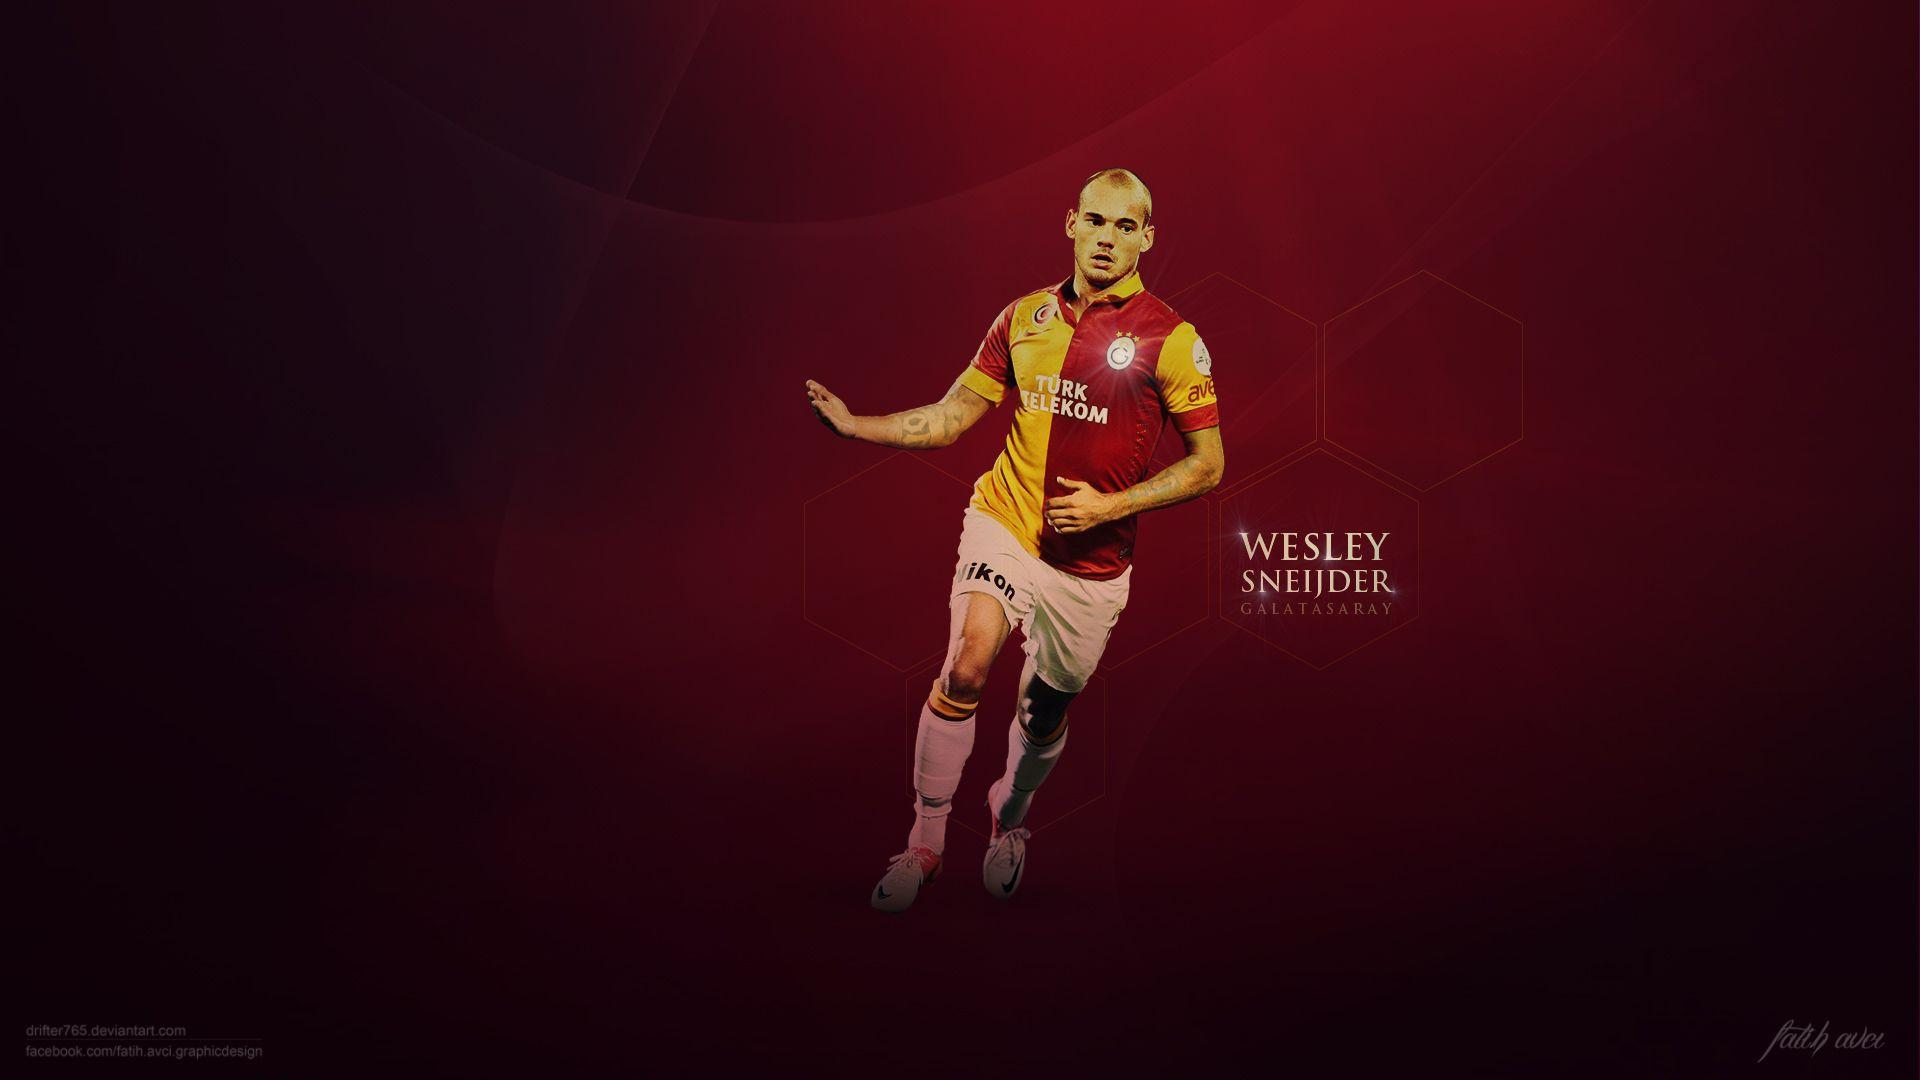 Wesley Sneijder Galatasaray Exclusive HD Wallpapers #1958